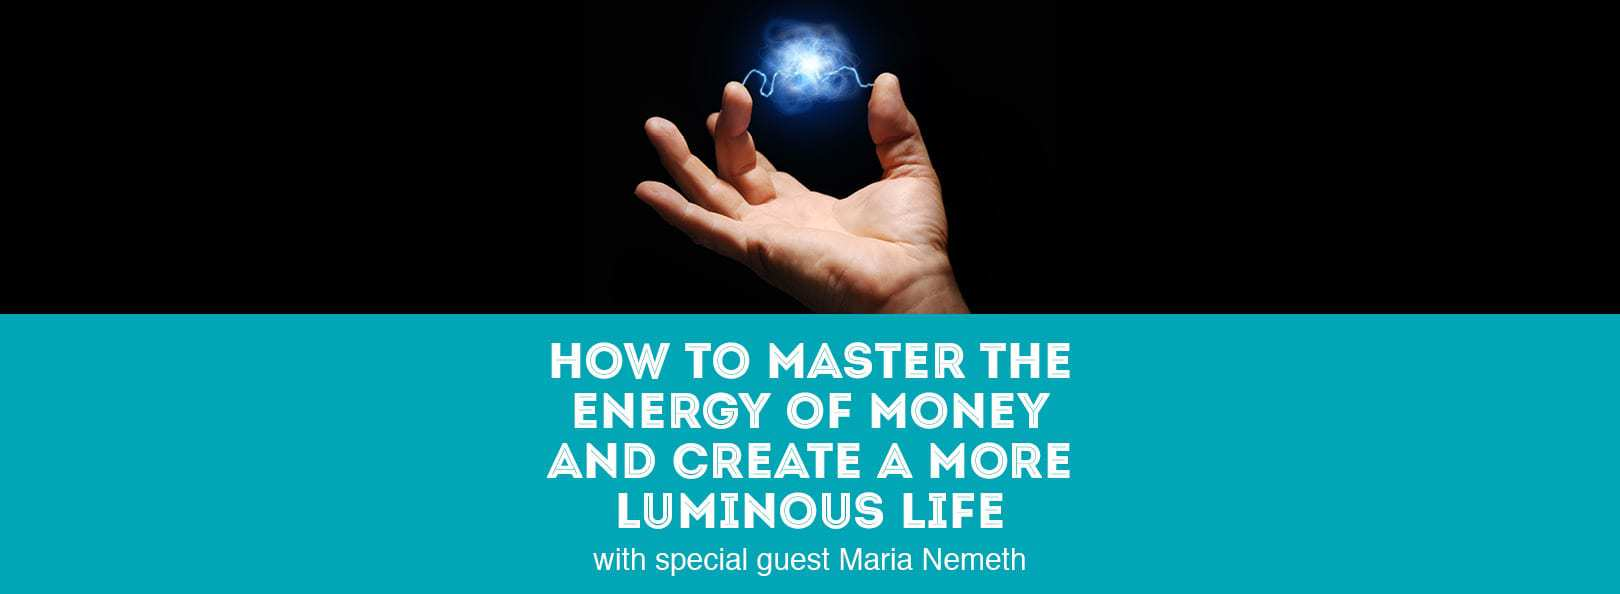 How to Master the Energy of Money and Create a More Luminous Life with special guest Maria Nemeth